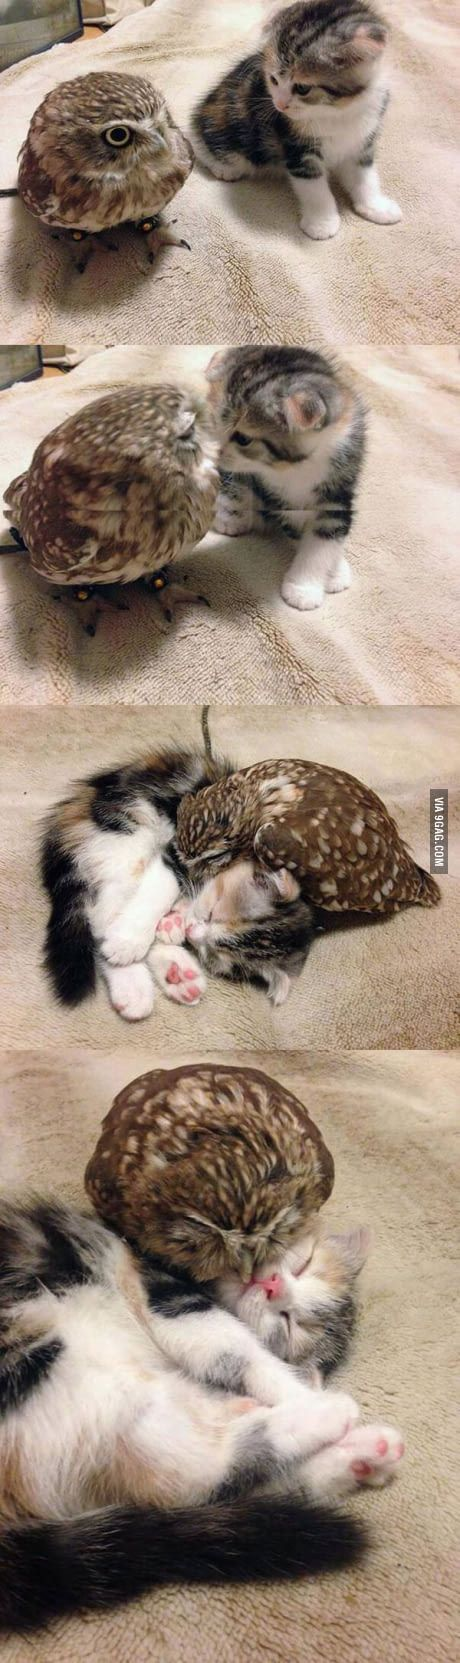 Tiny owl and tiny kitten Such a precious example of God's Love expressed for one another by His precious babies. Some people could learn a lot about how to love by these sweet babies.